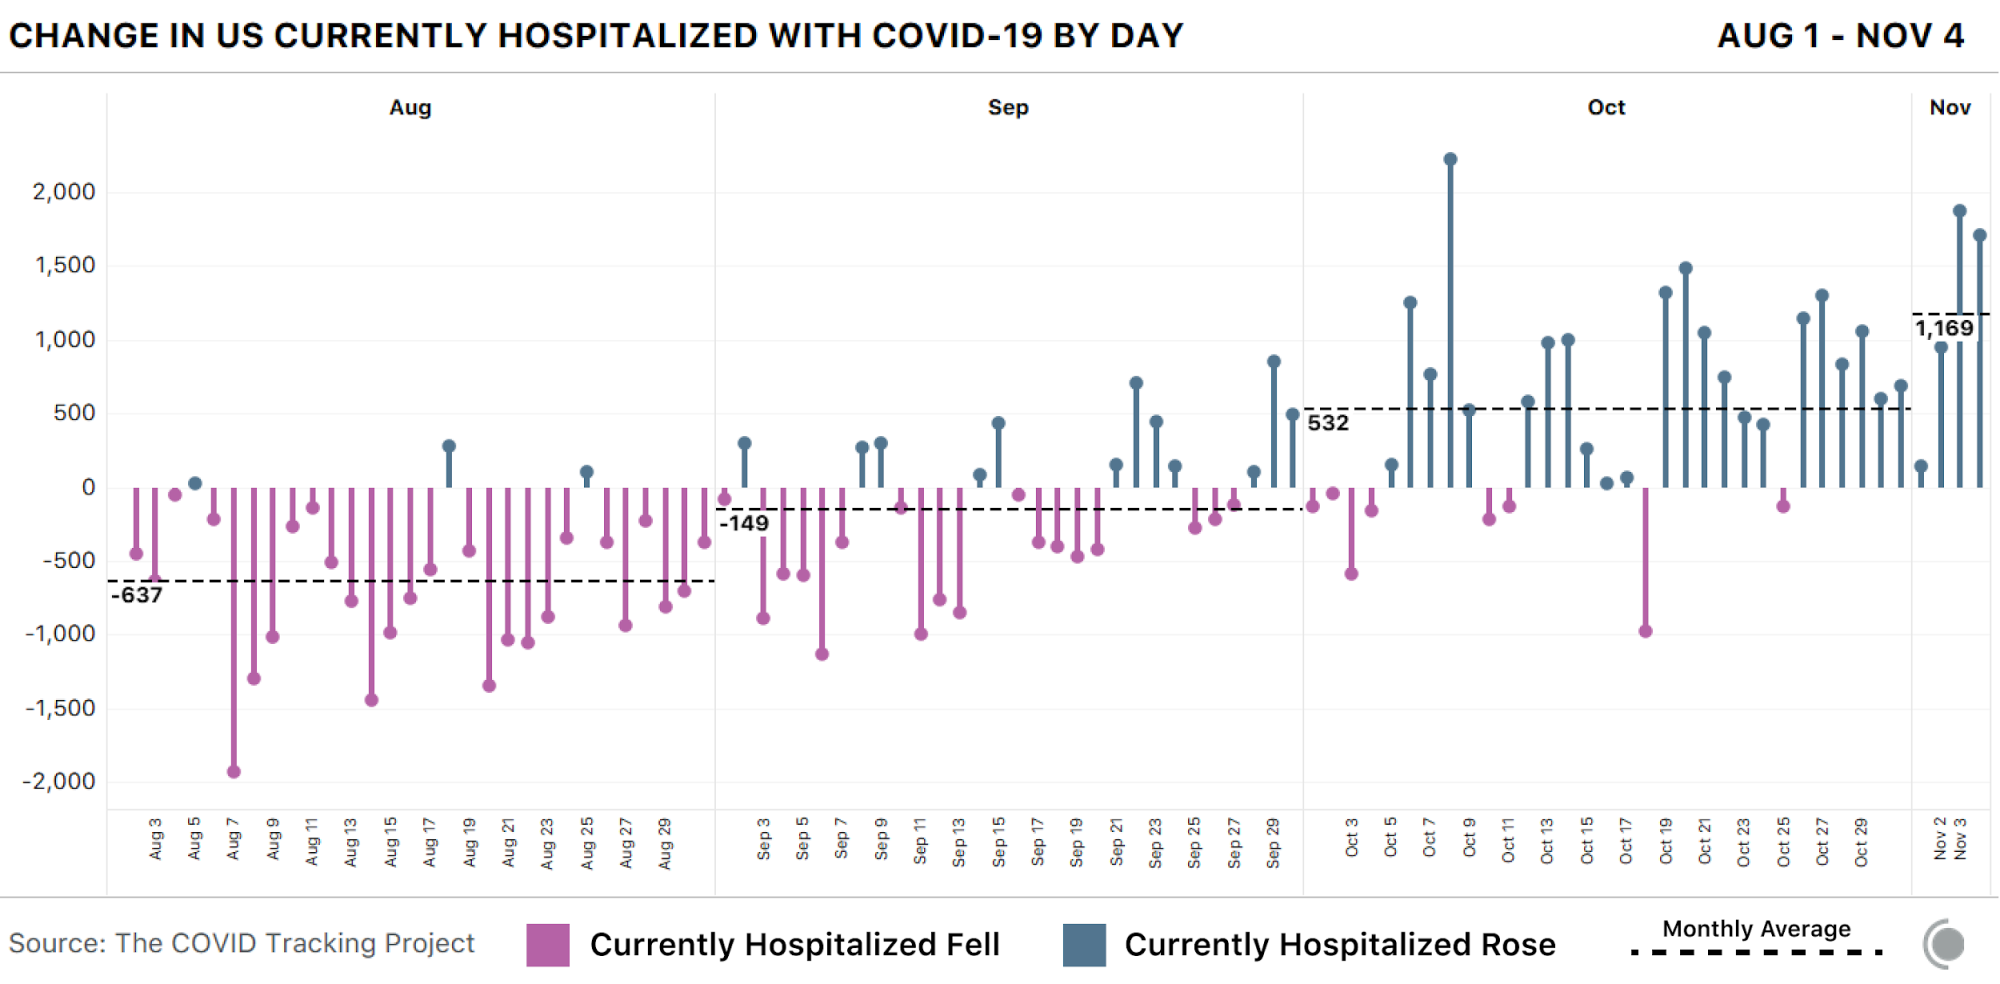 Chart showing the change in the number of currently hospitalized people with COVID-19 in the US day over day since August 1. Hospitalizations are growing, and growing faster, in more recent weeks.